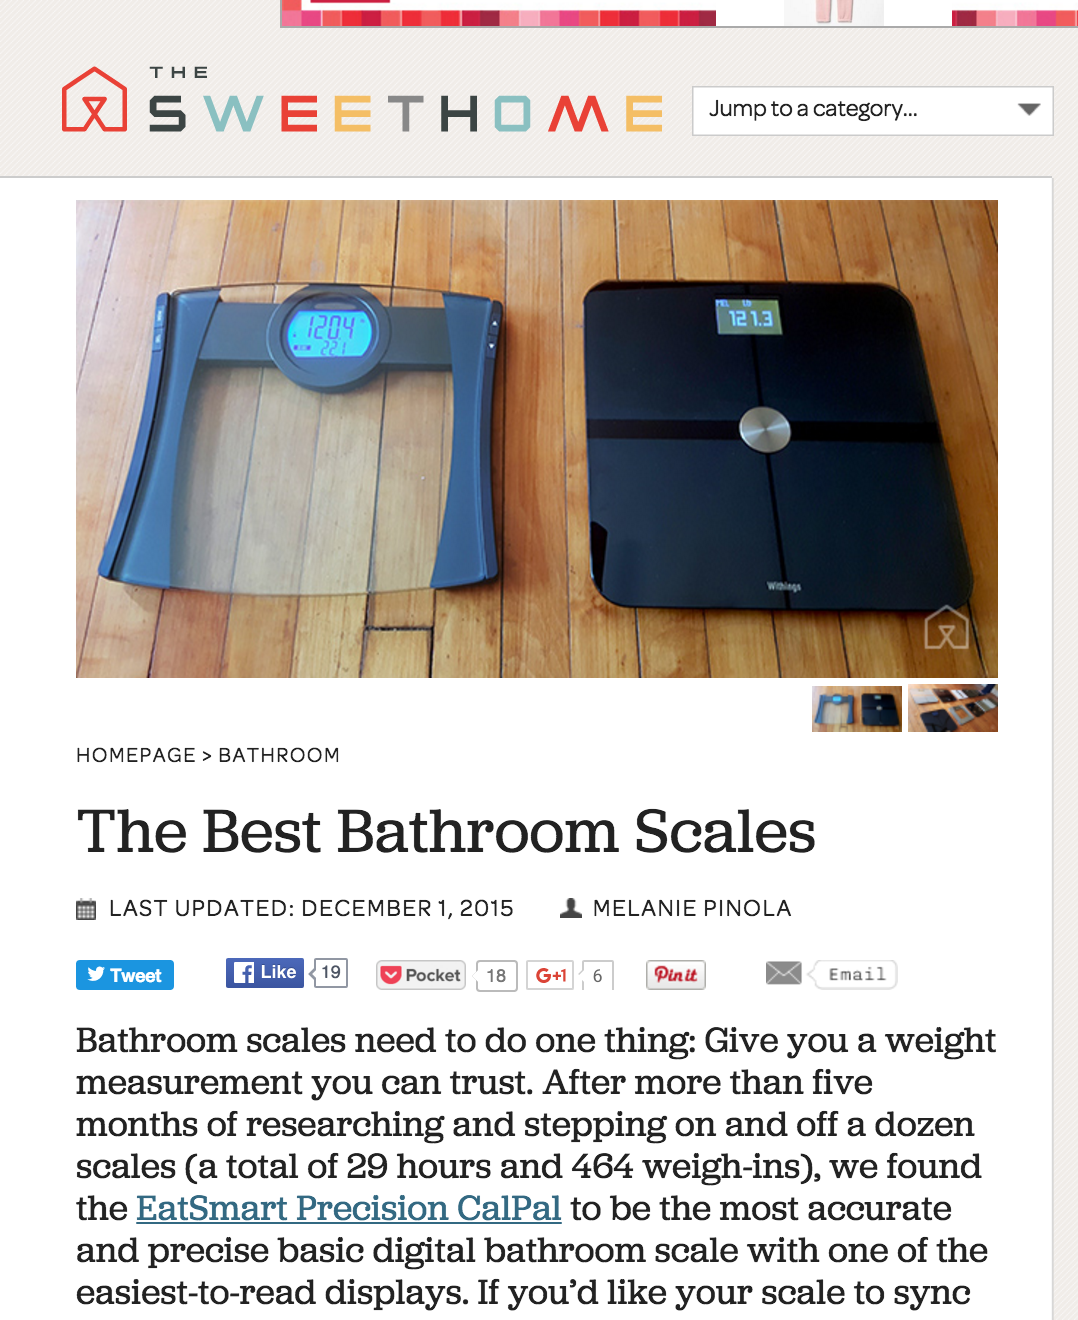 Most accurate bathroom scale 2014 - The 25 Best Best Bathroom Scale Ideas On Pinterest Beach Style Bathroom Scales How To Tile A Shower And Kitchen Cabinet Pulls